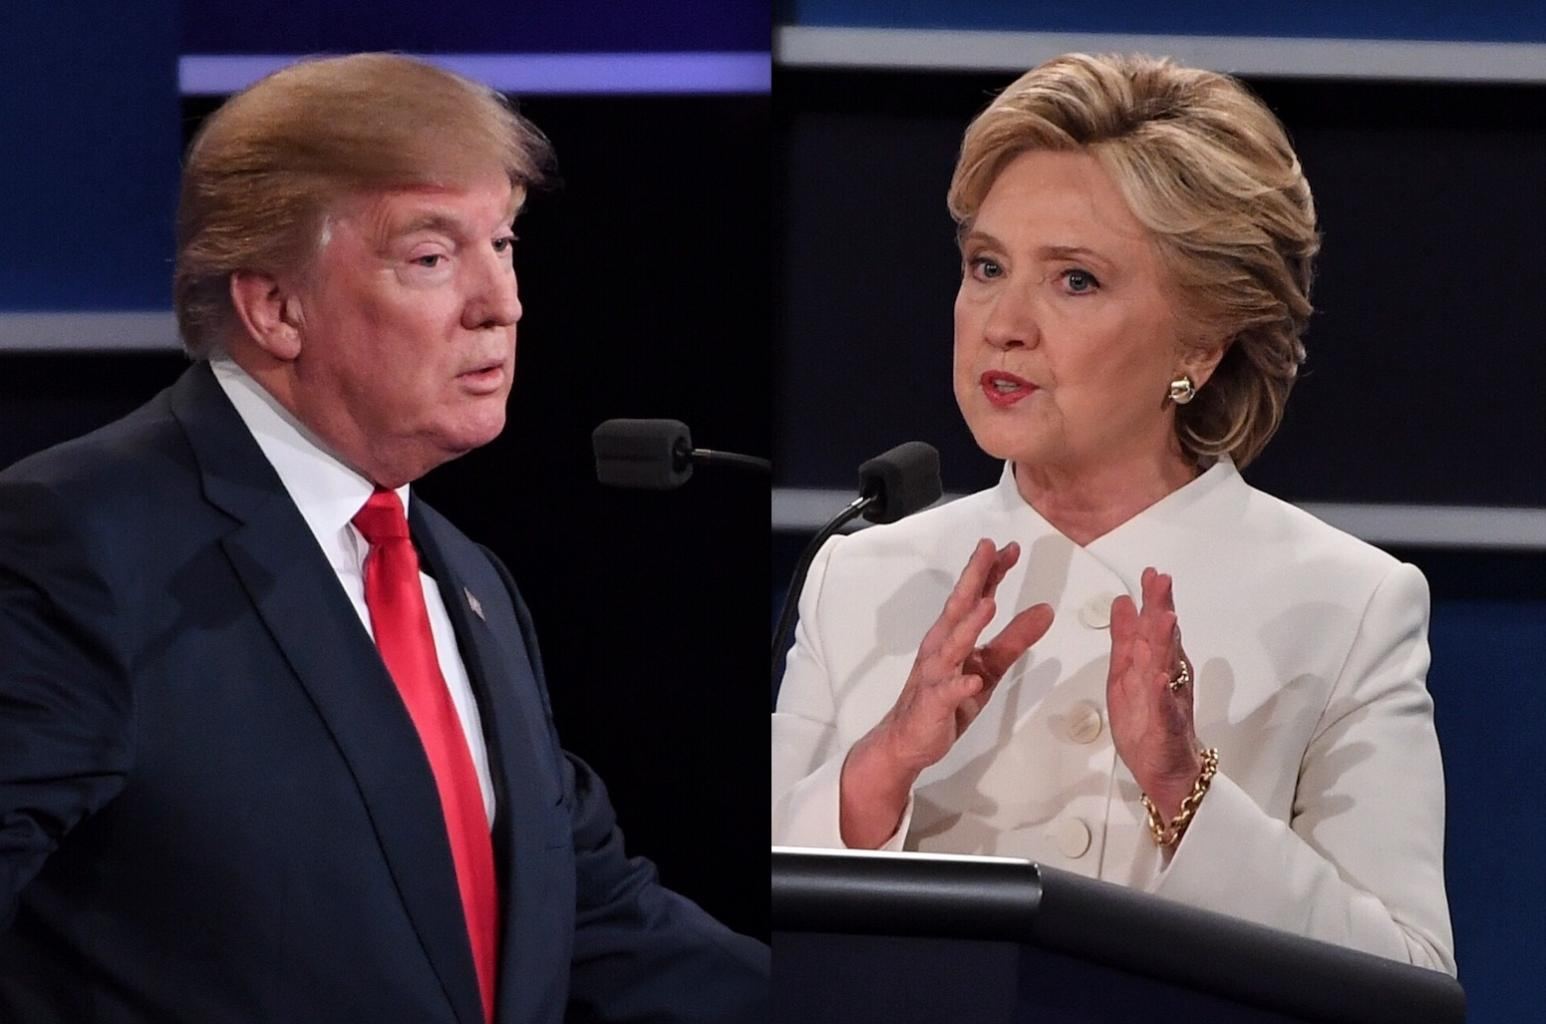 Celebs Take To Twitter To Respond To Final Presidential Debate, Mock Trump       's        Hombres       ',        Nasty Woman      '  Remarks